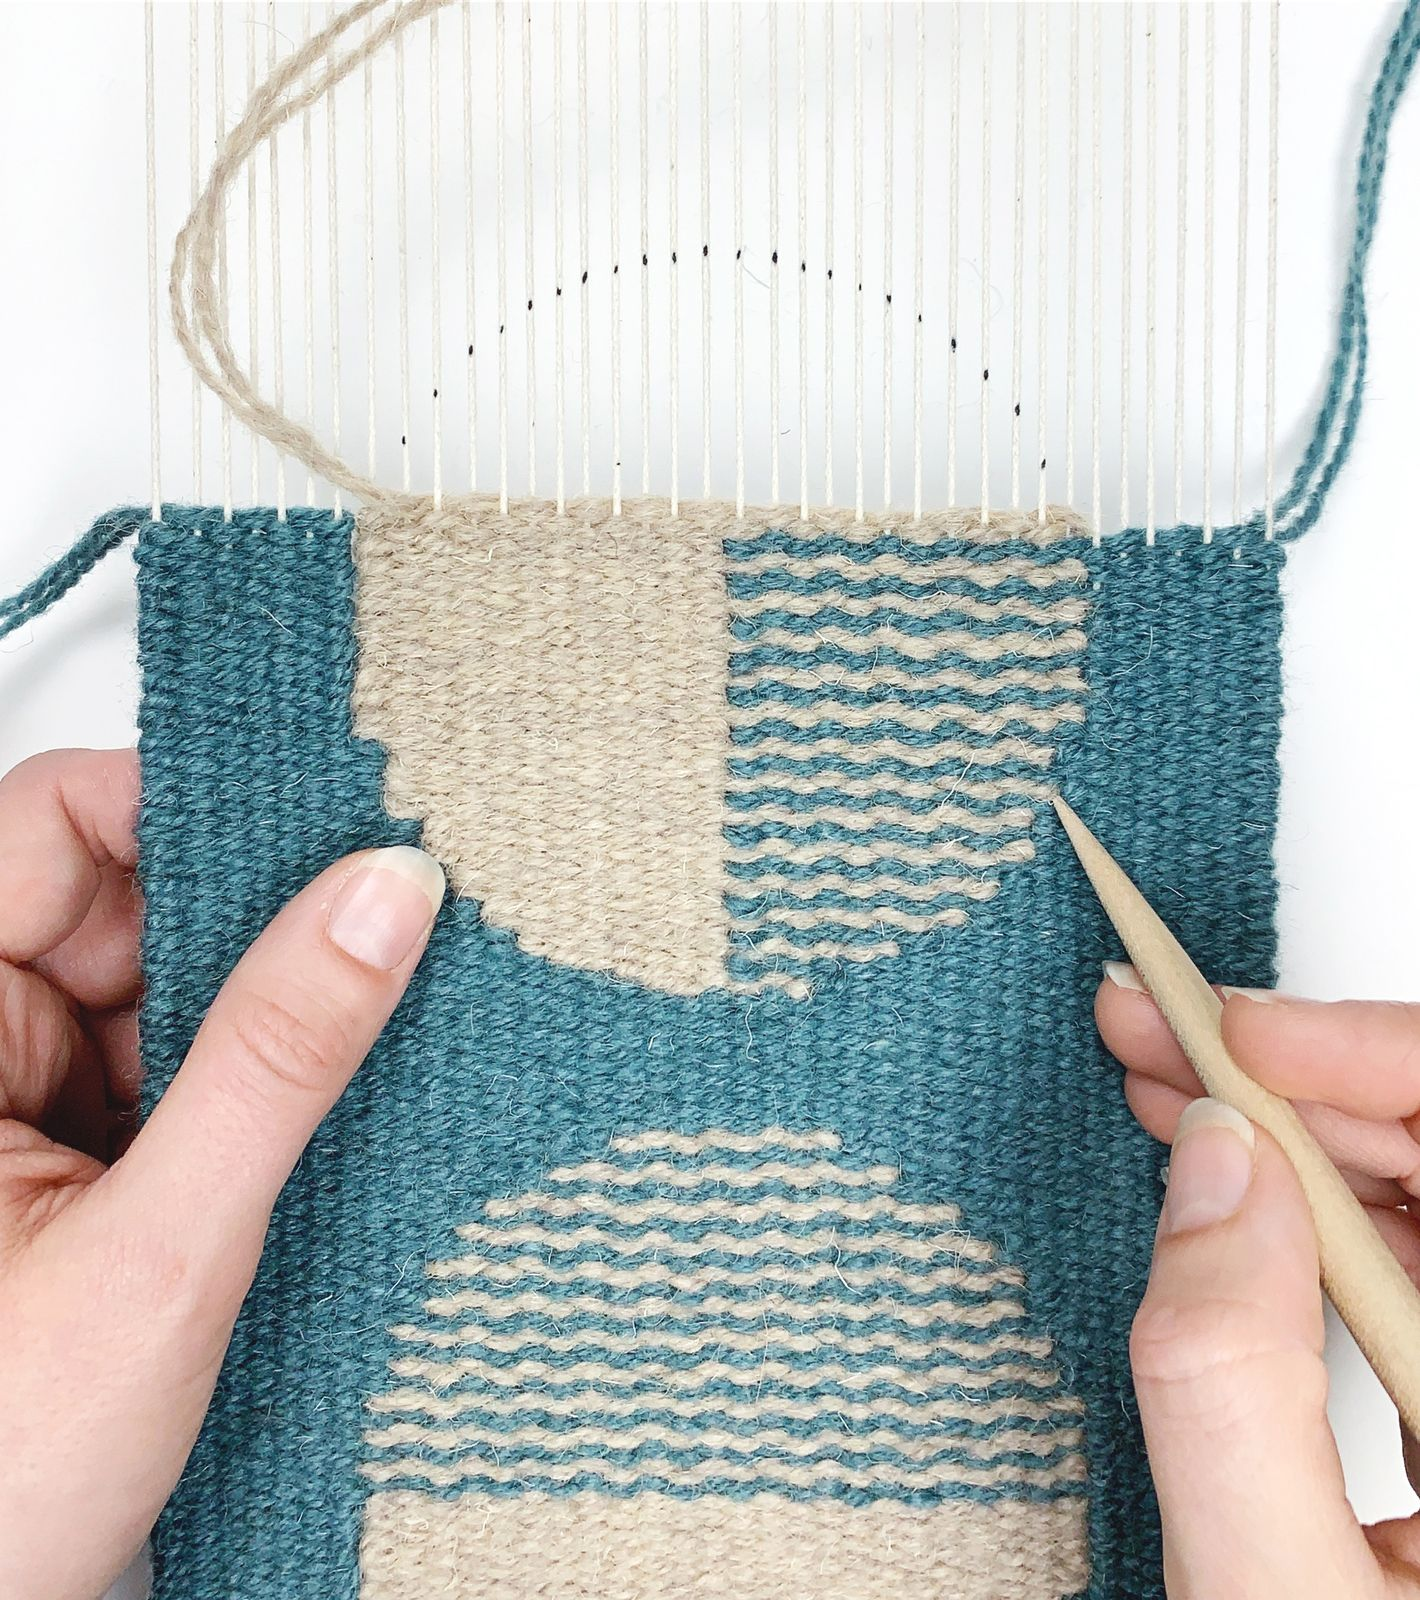 Geometric Tapestry Weaving Online Course